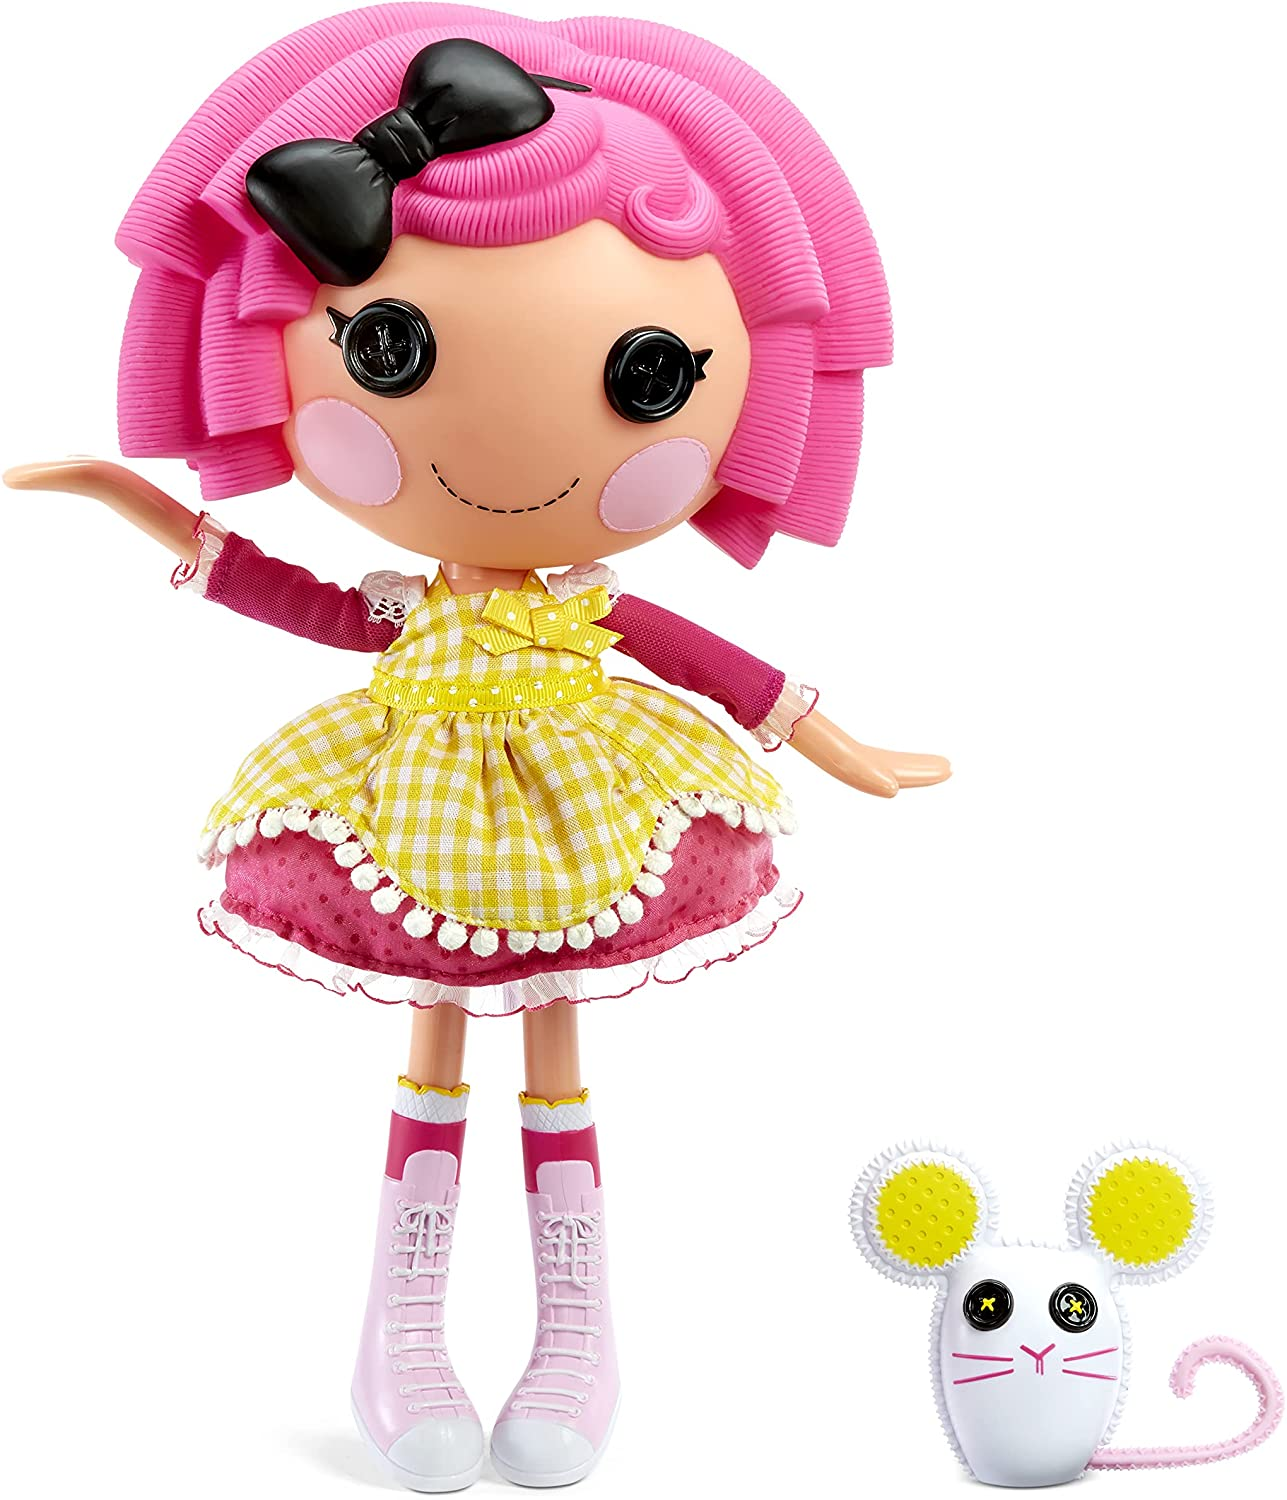 Lalaloopsy Doll - Crumbs Sugar Cookie with Pet Mouse, 13